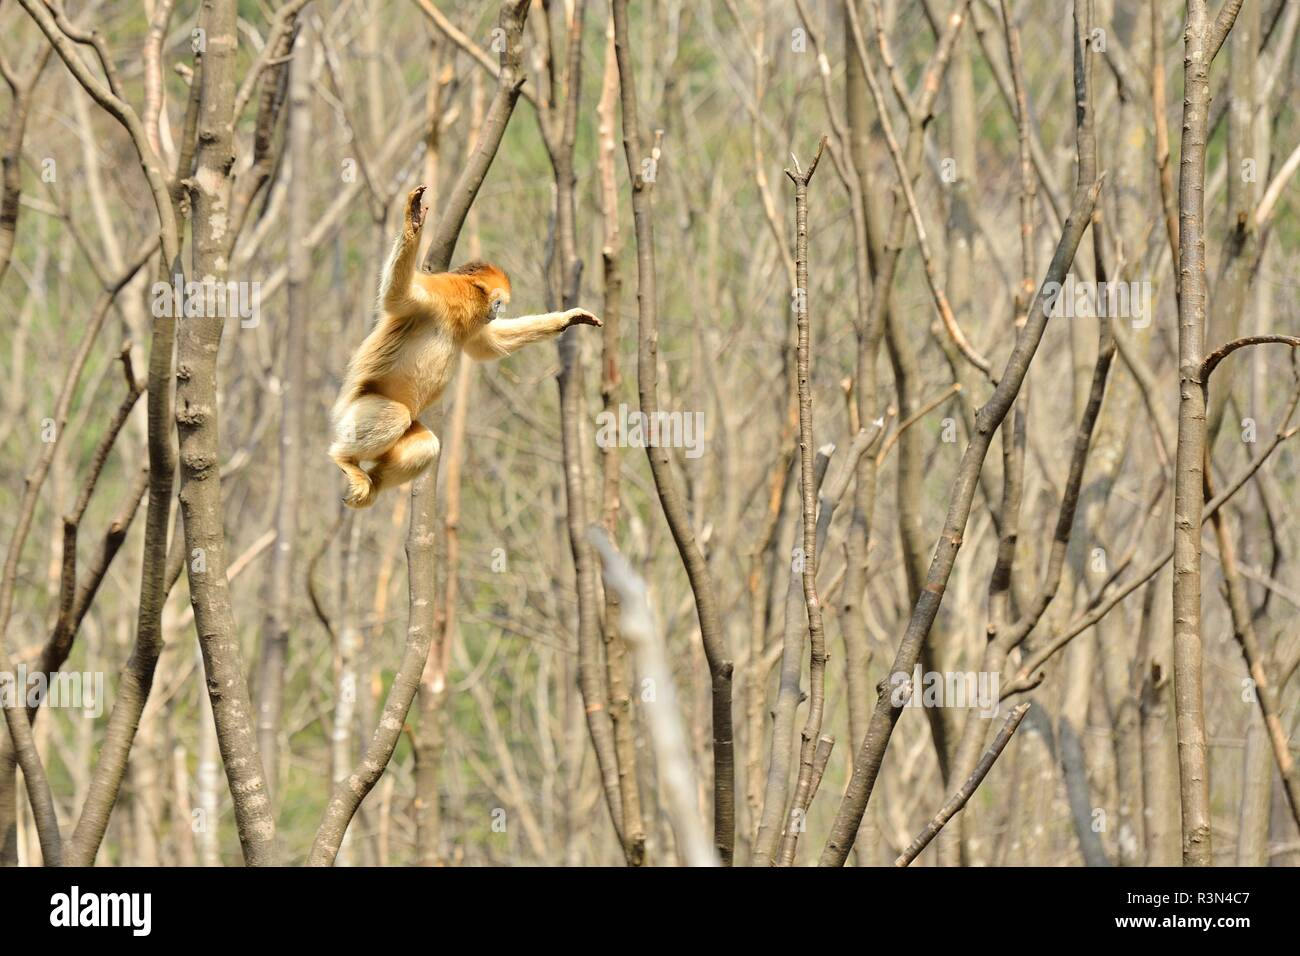 Golden snub-nosed monkey (Pygathrix roxellana) leaping from branch to branch, Shannxi Province, China - Stock Image